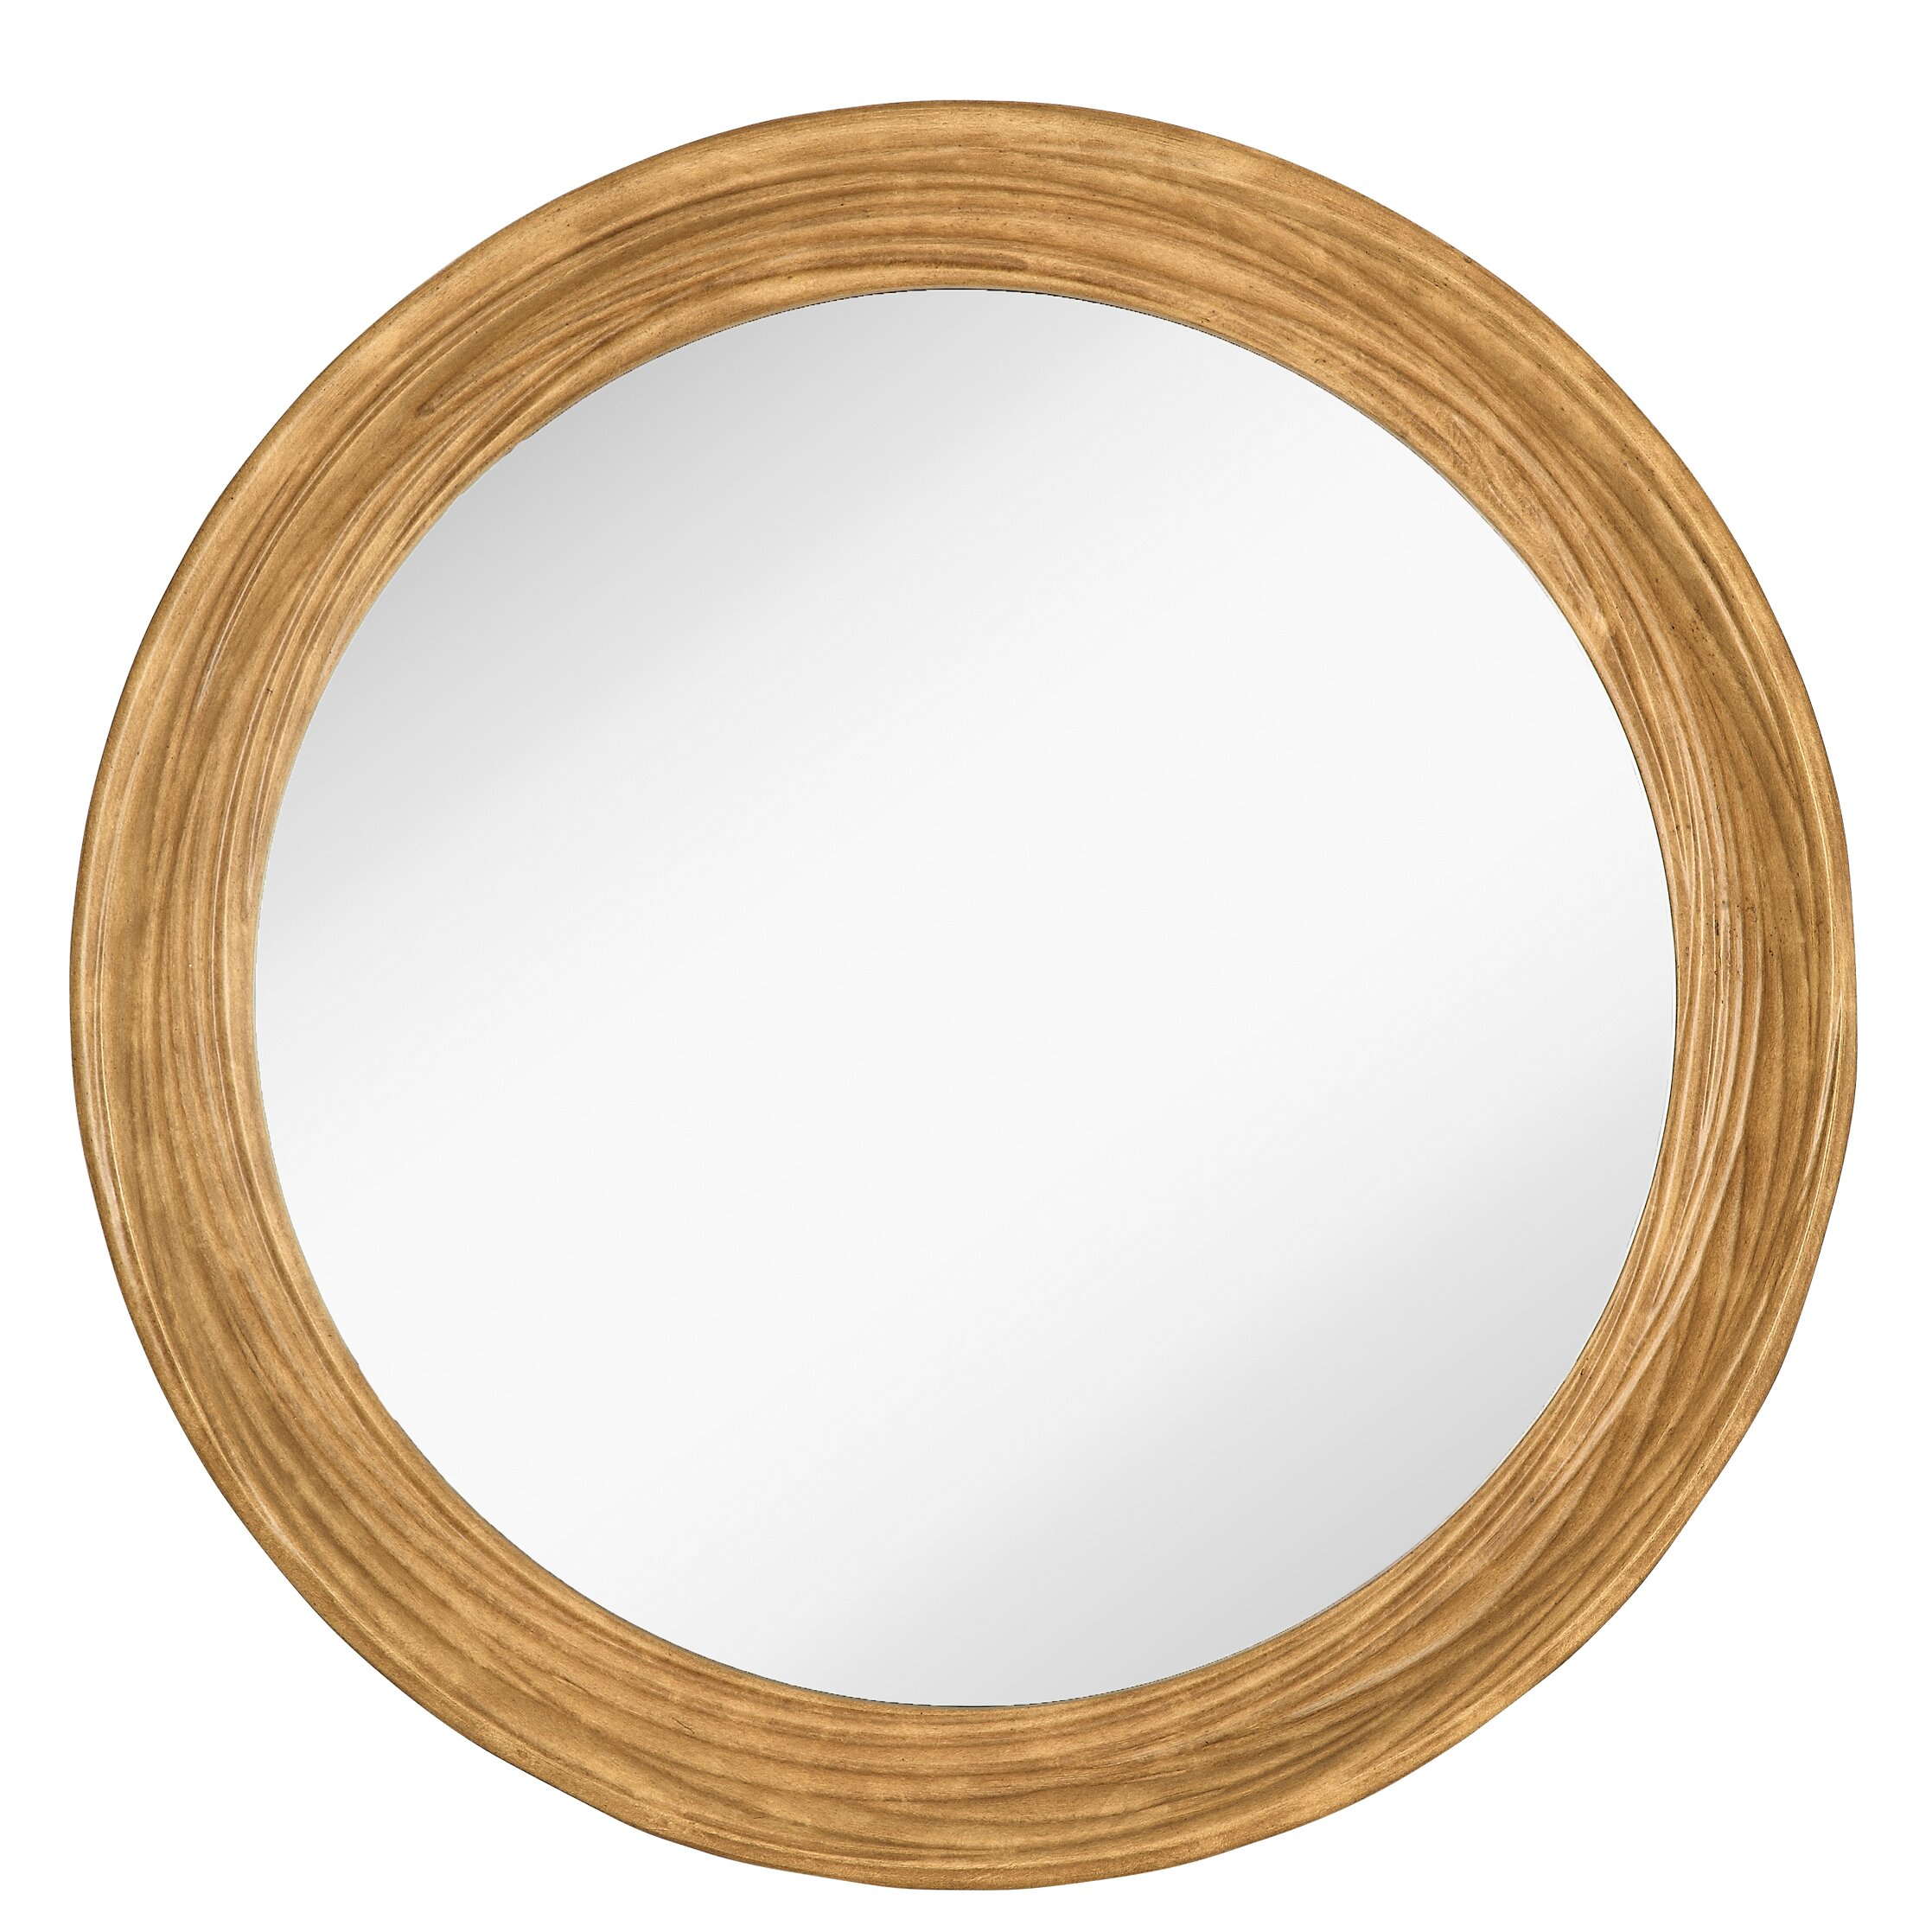 Majestic Mirror Round Simple Natural Wood Framed Hanging